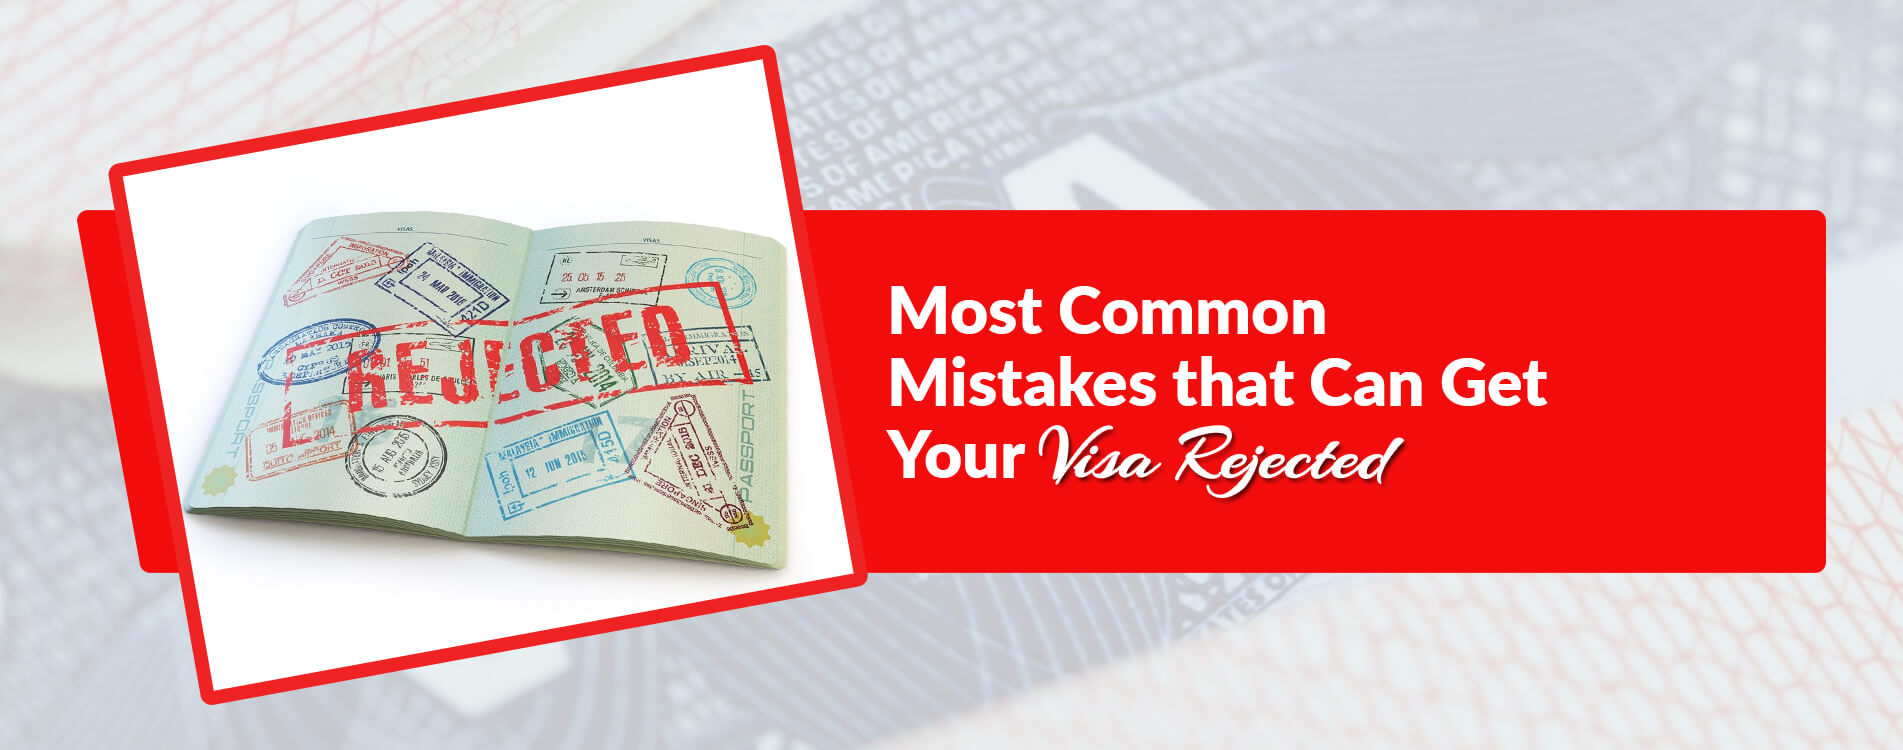 Most Common Mistakes that Can Get Your Visa Rejected